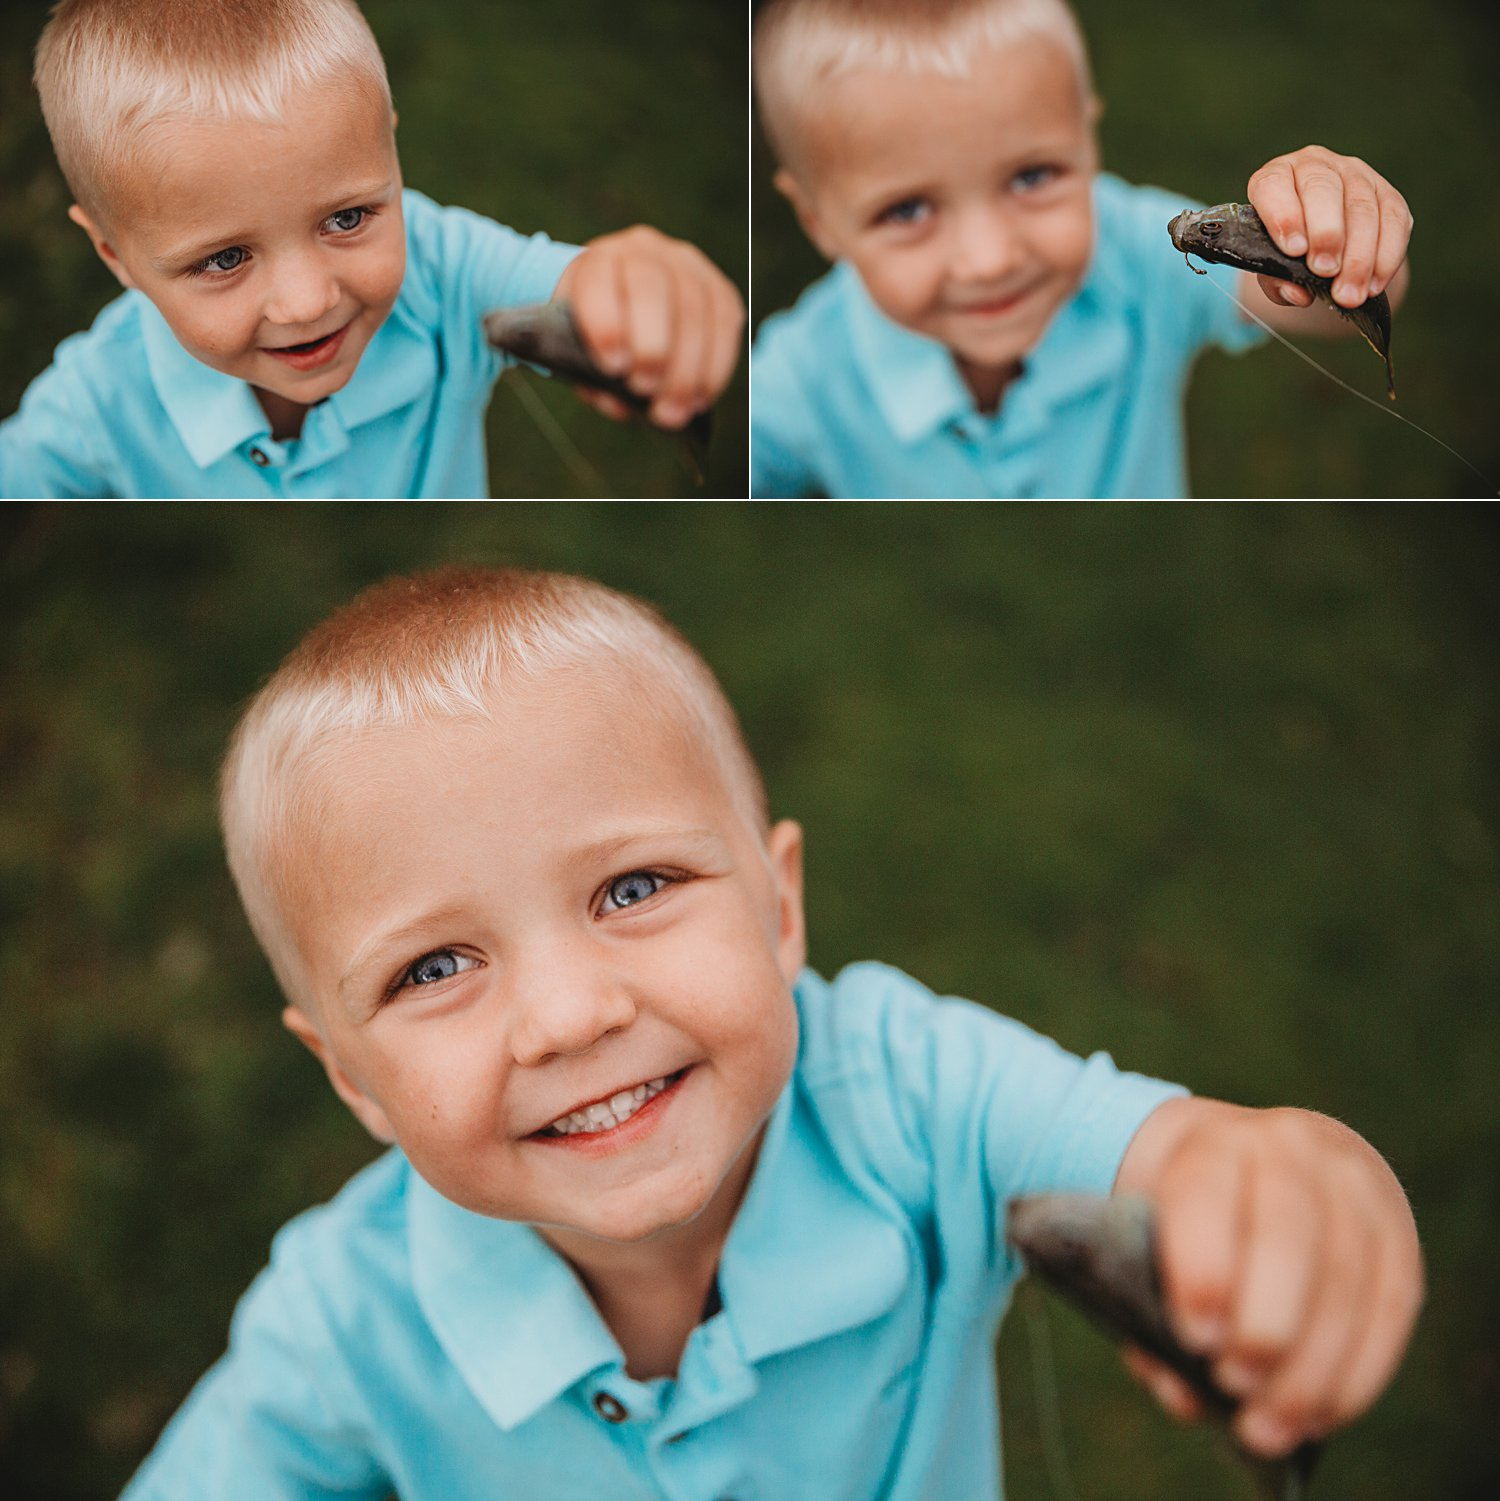 Portraits of a young boy holding a fish